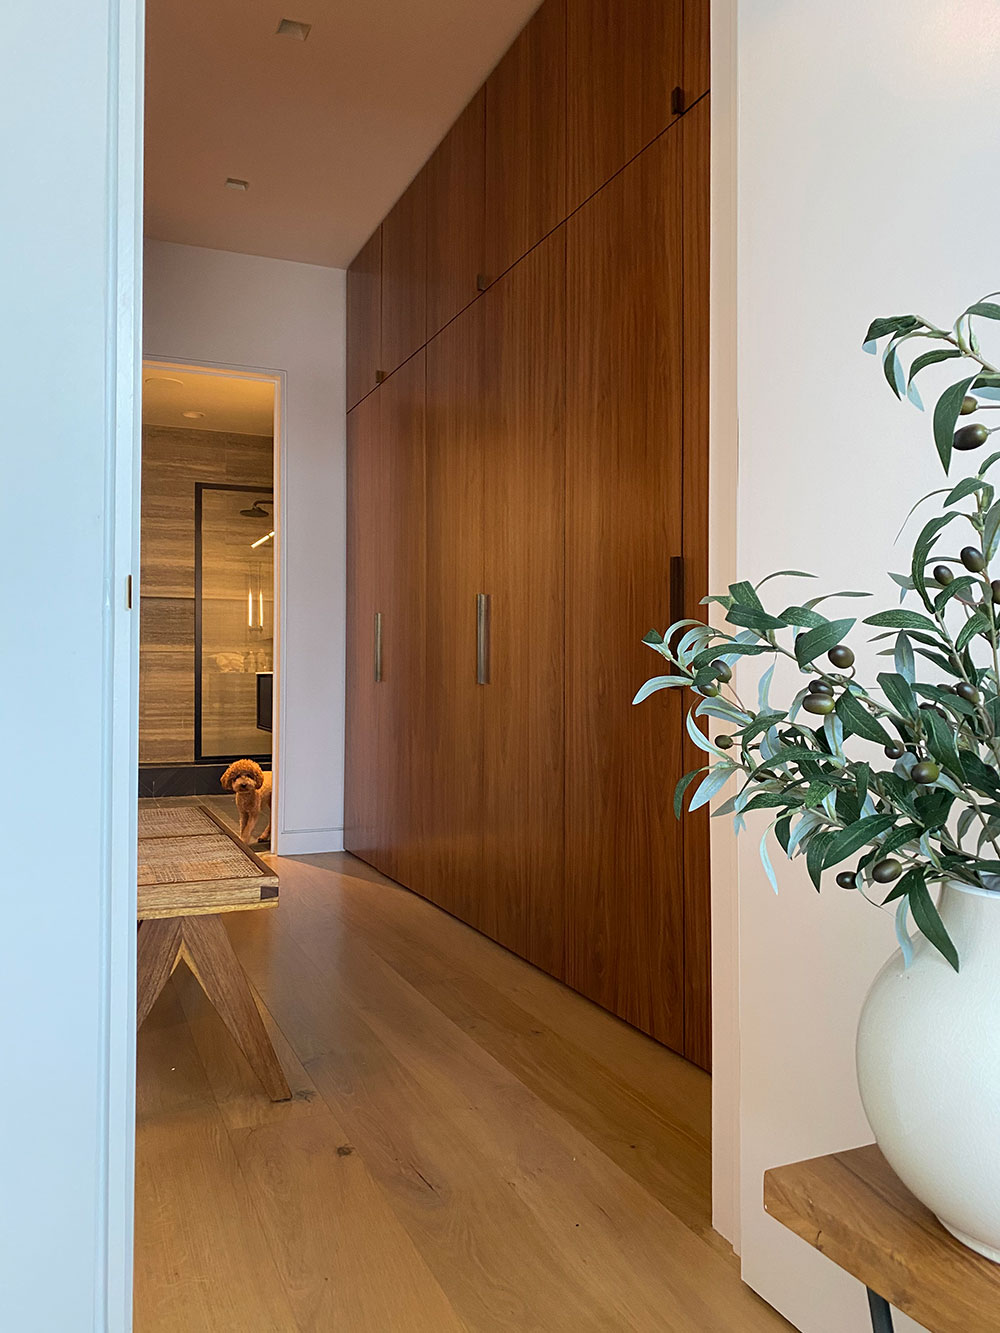 Walking closet of the Loft renovation project in Chelsea, New York City designed by the architecture studio Danny Forster & Architecture